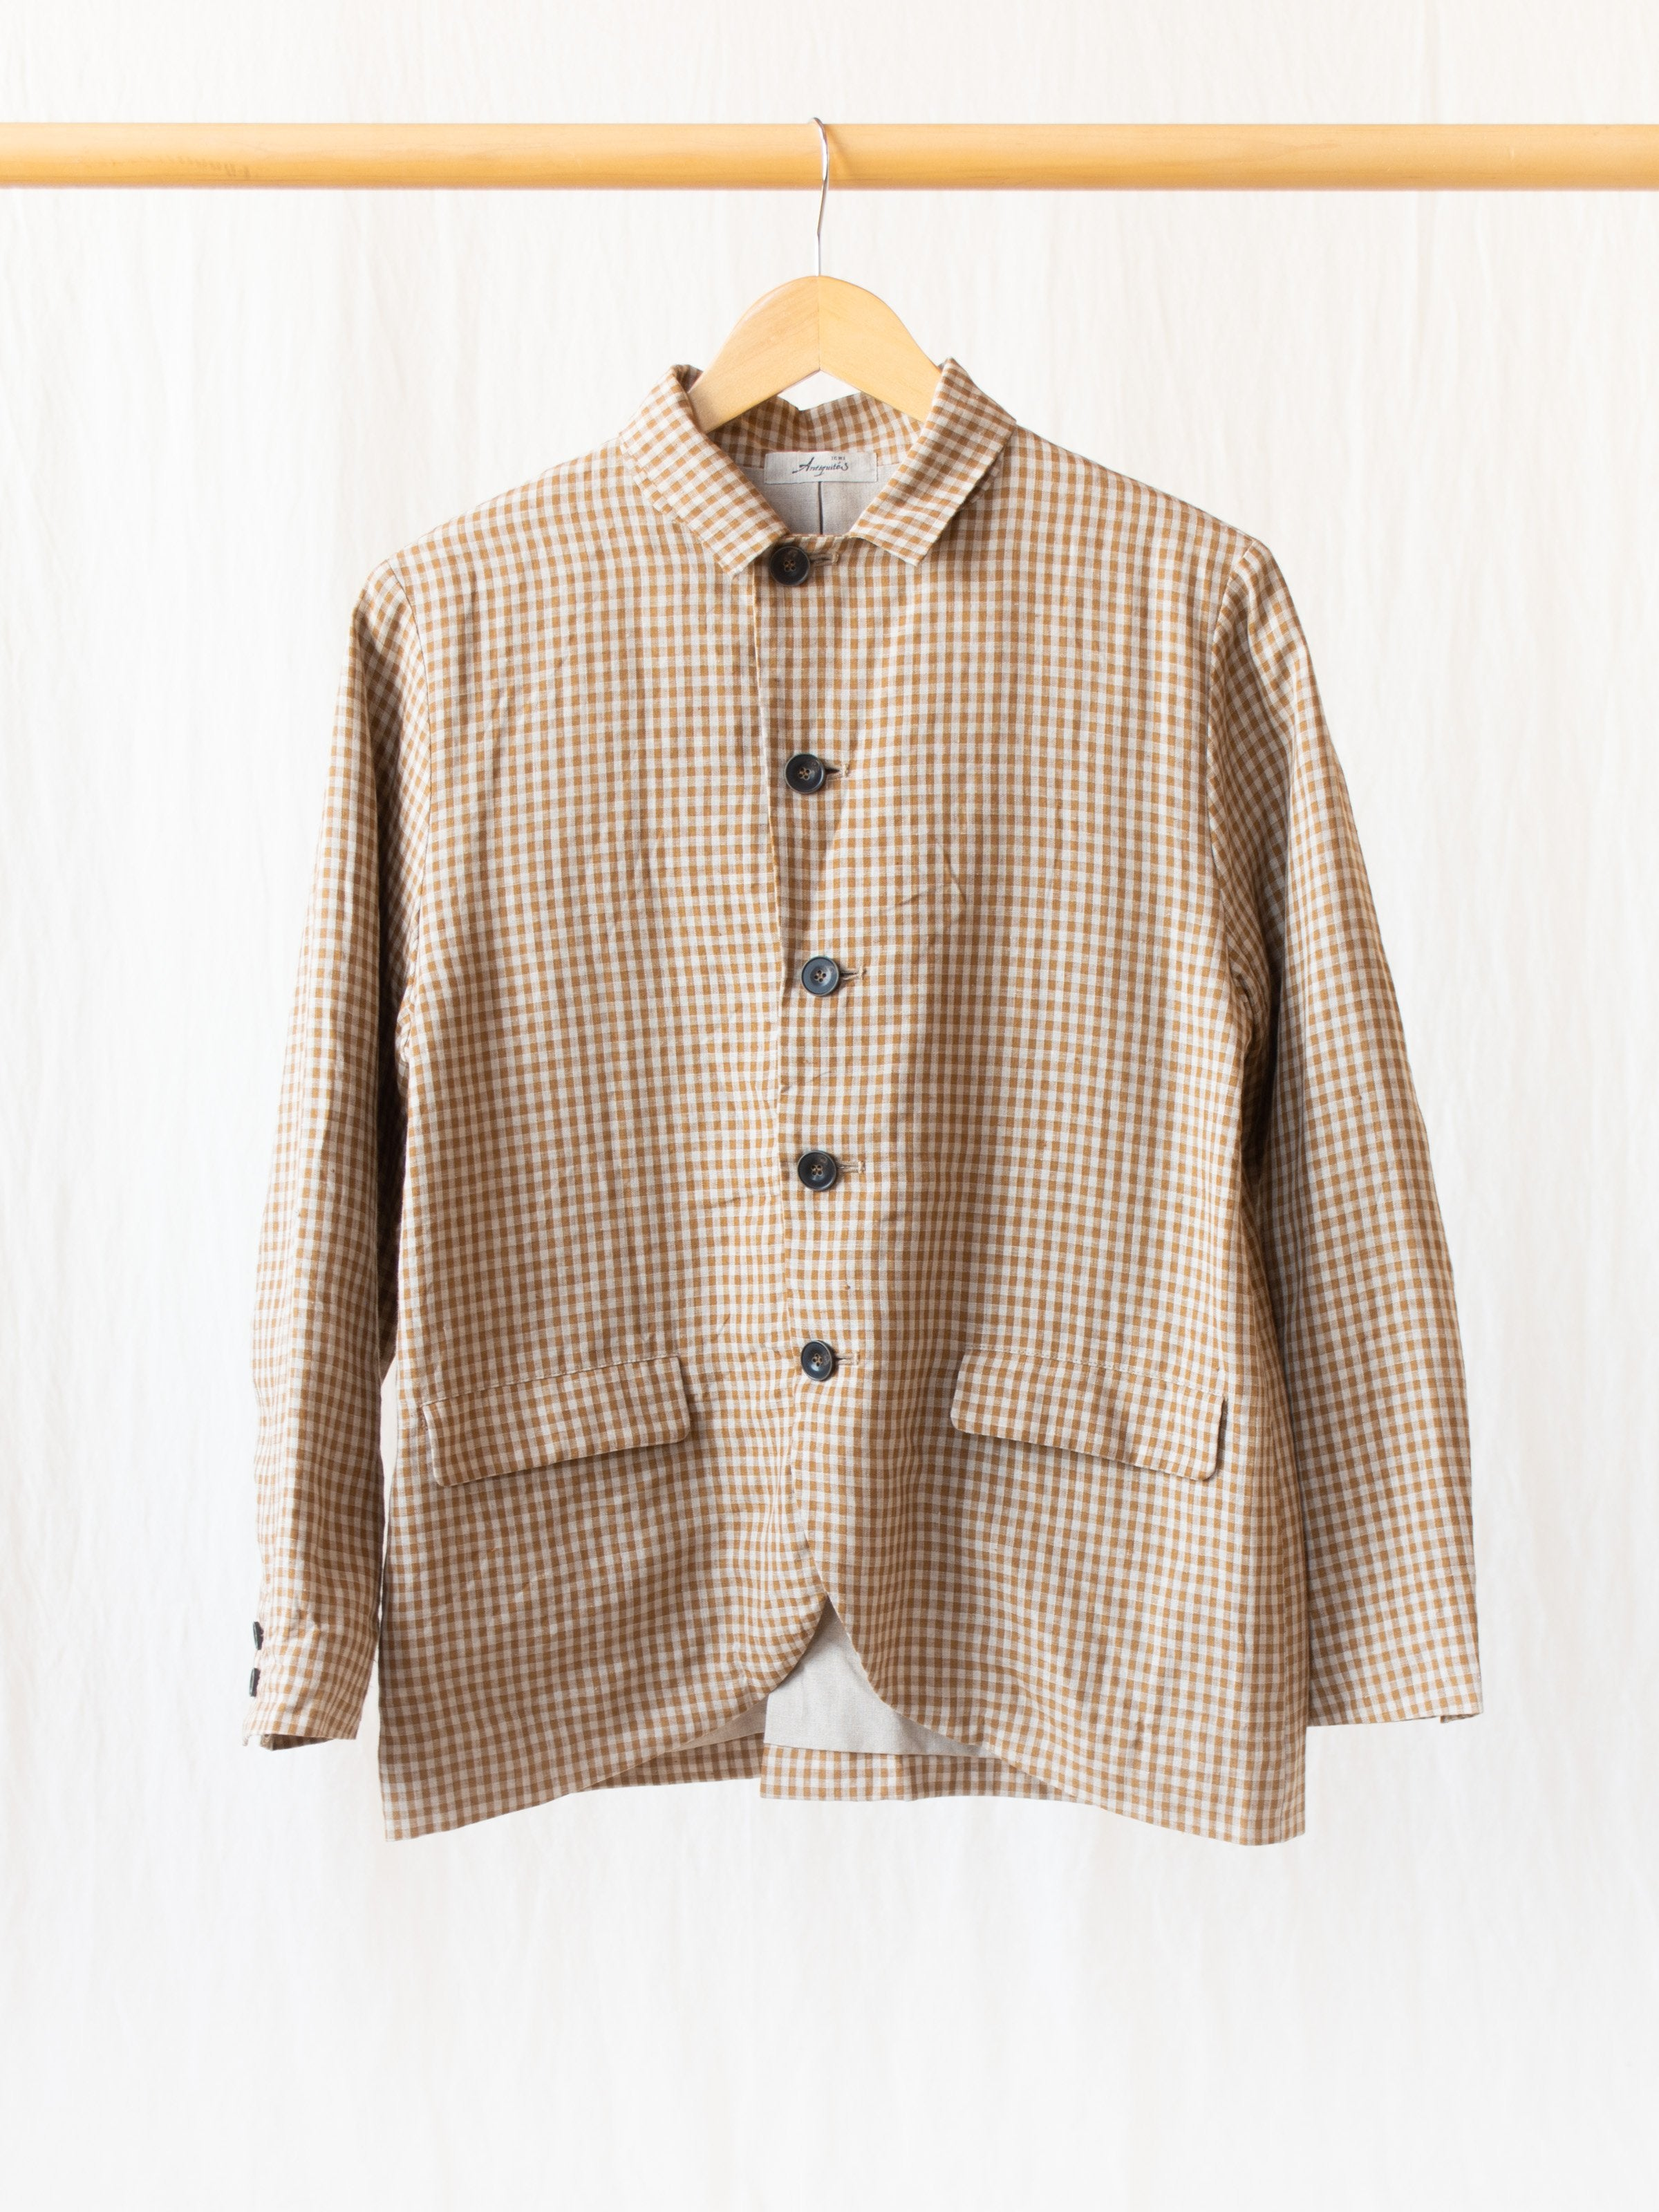 Namu Shop - Ichi Antiquites Linen Dungaree Jacket - Camel Gingham